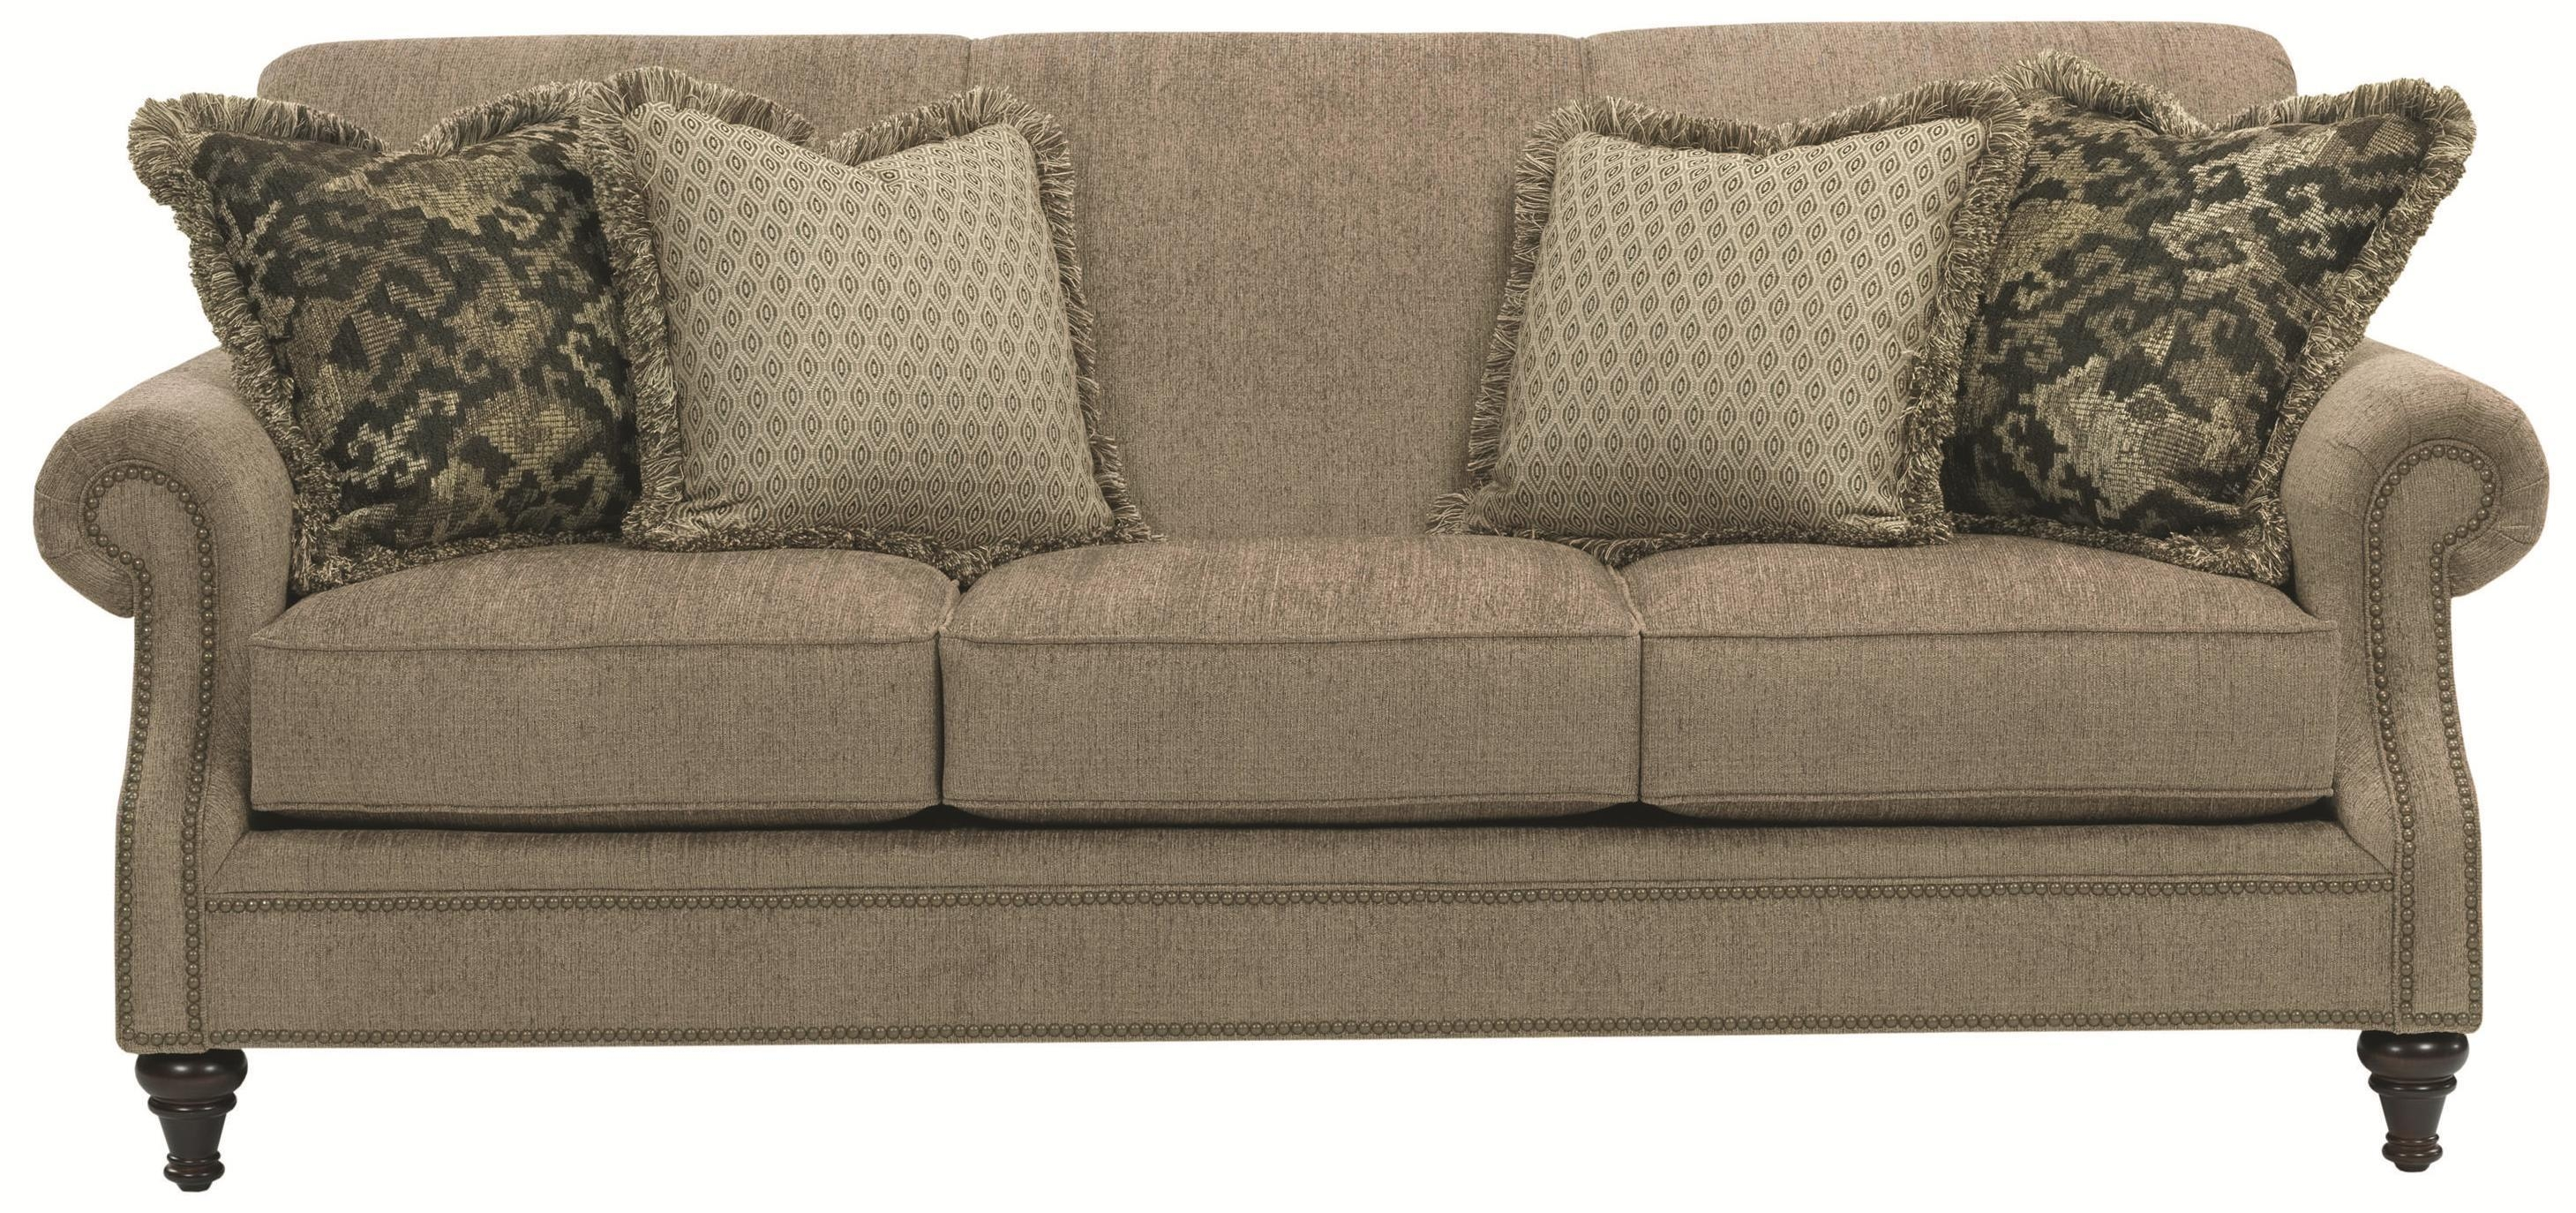 Broyhill Furniture Windsor Sofa With Rolled Arms – Wayside Pertaining To Broyhill Sofas (Image 12 of 20)